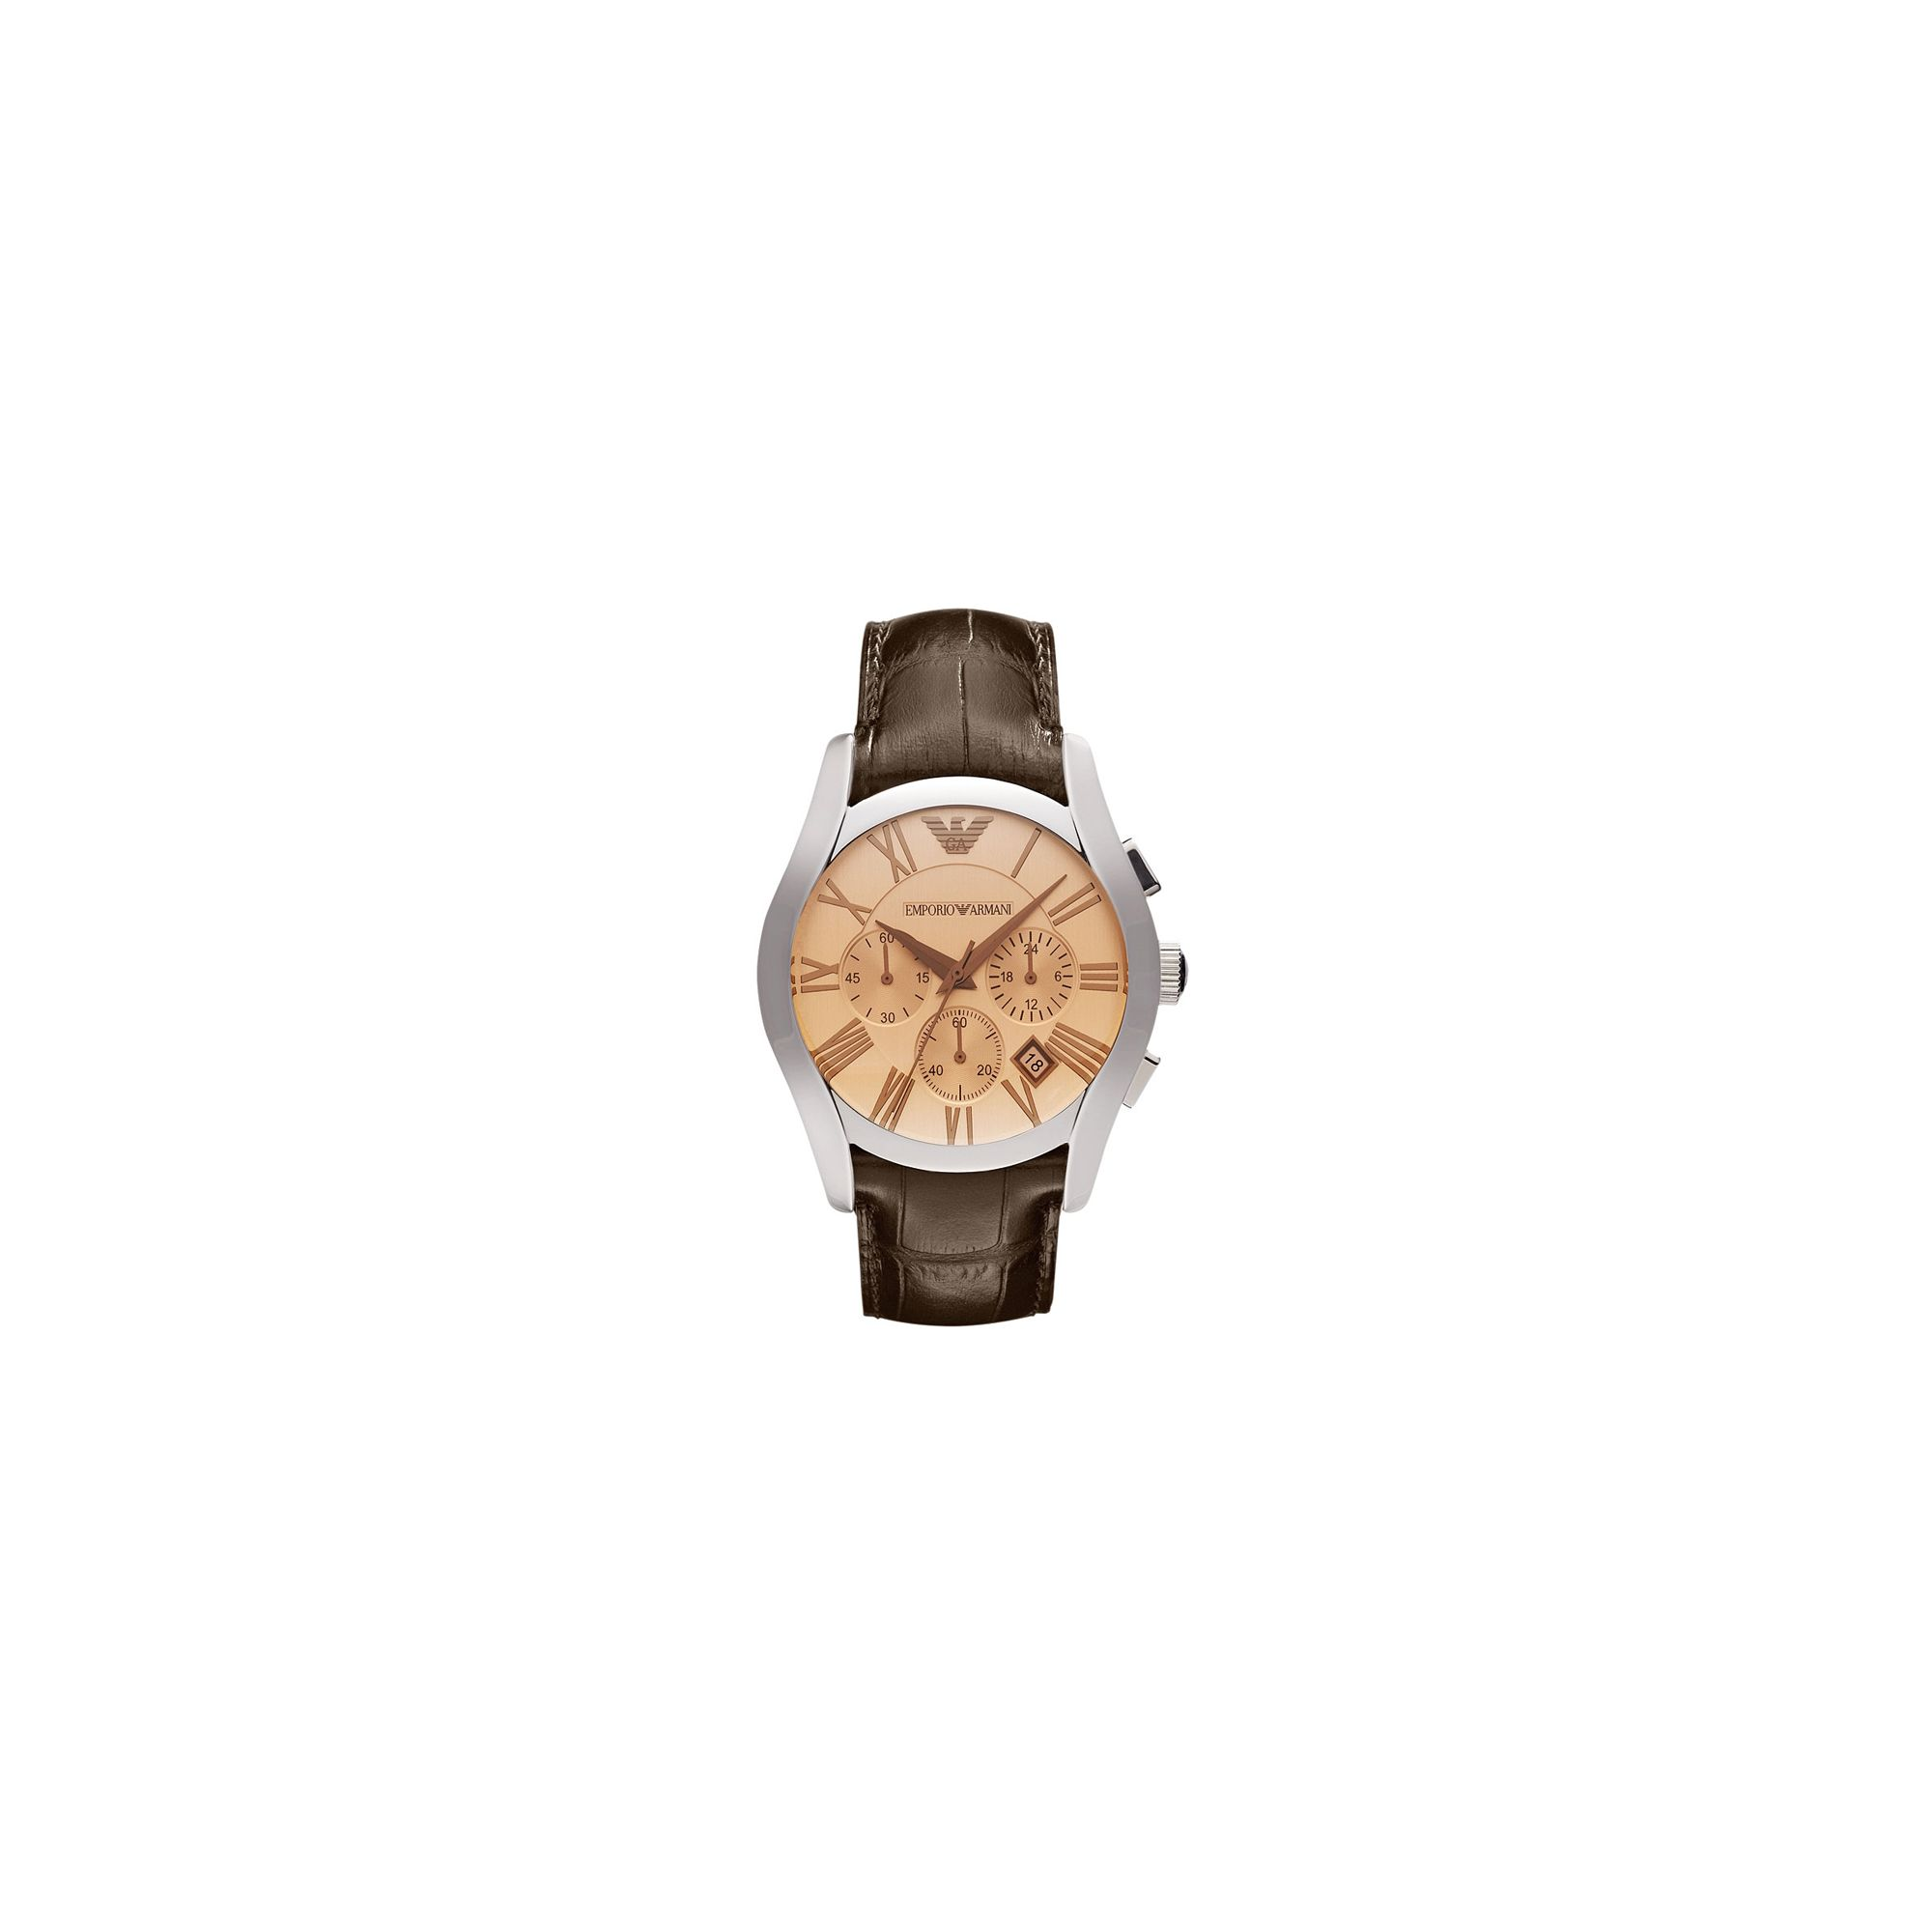 Emporio Armani Gents Chronograph Brown Leather Strap Watch AR1634 at Tesco Direct